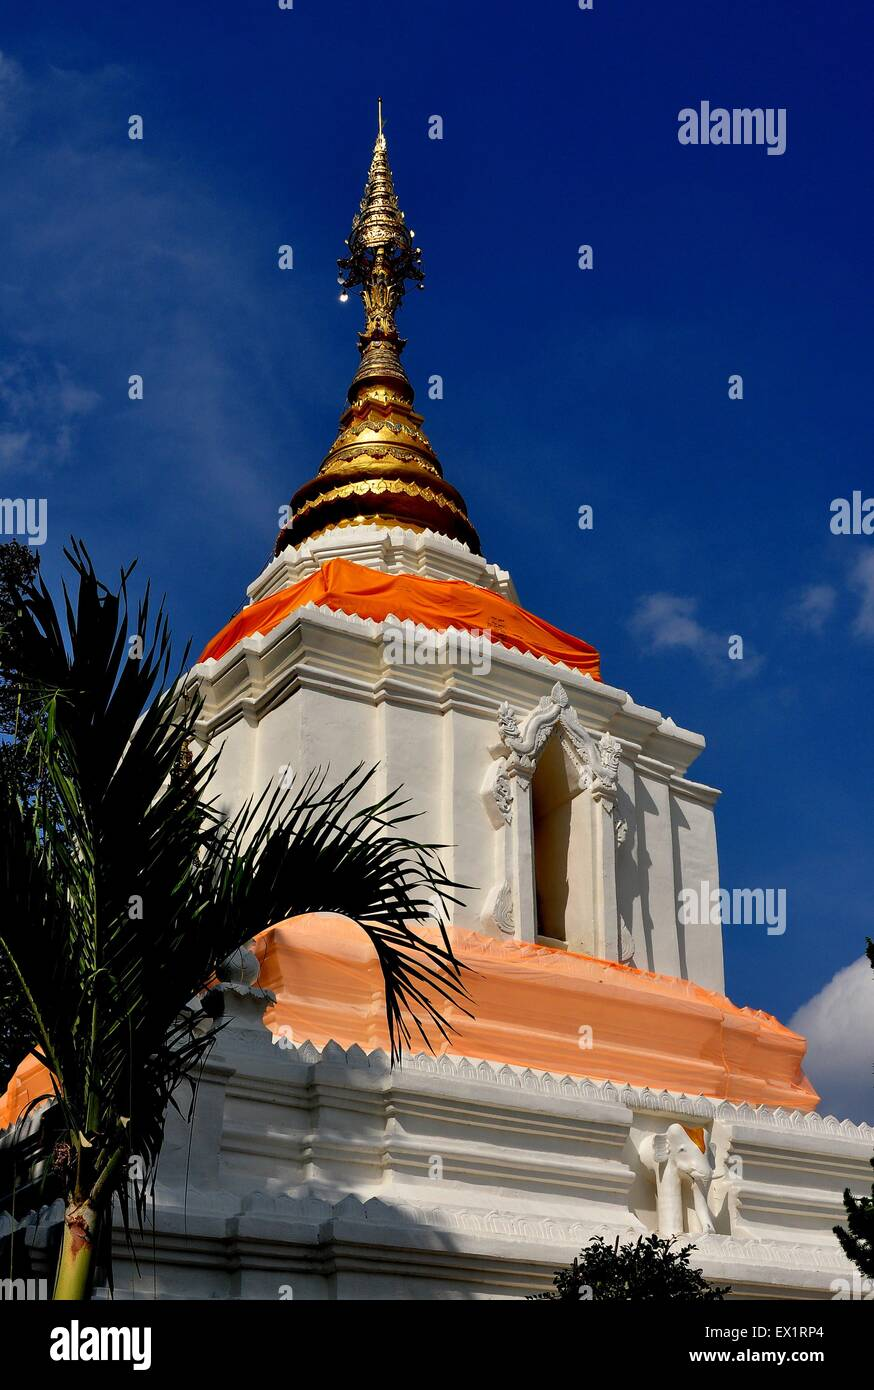 Chiang Mai, Thailand: The immense Wat Changkam white chedi capped with a golden spire at Wiang Kum Kam Ancie - Stock Image